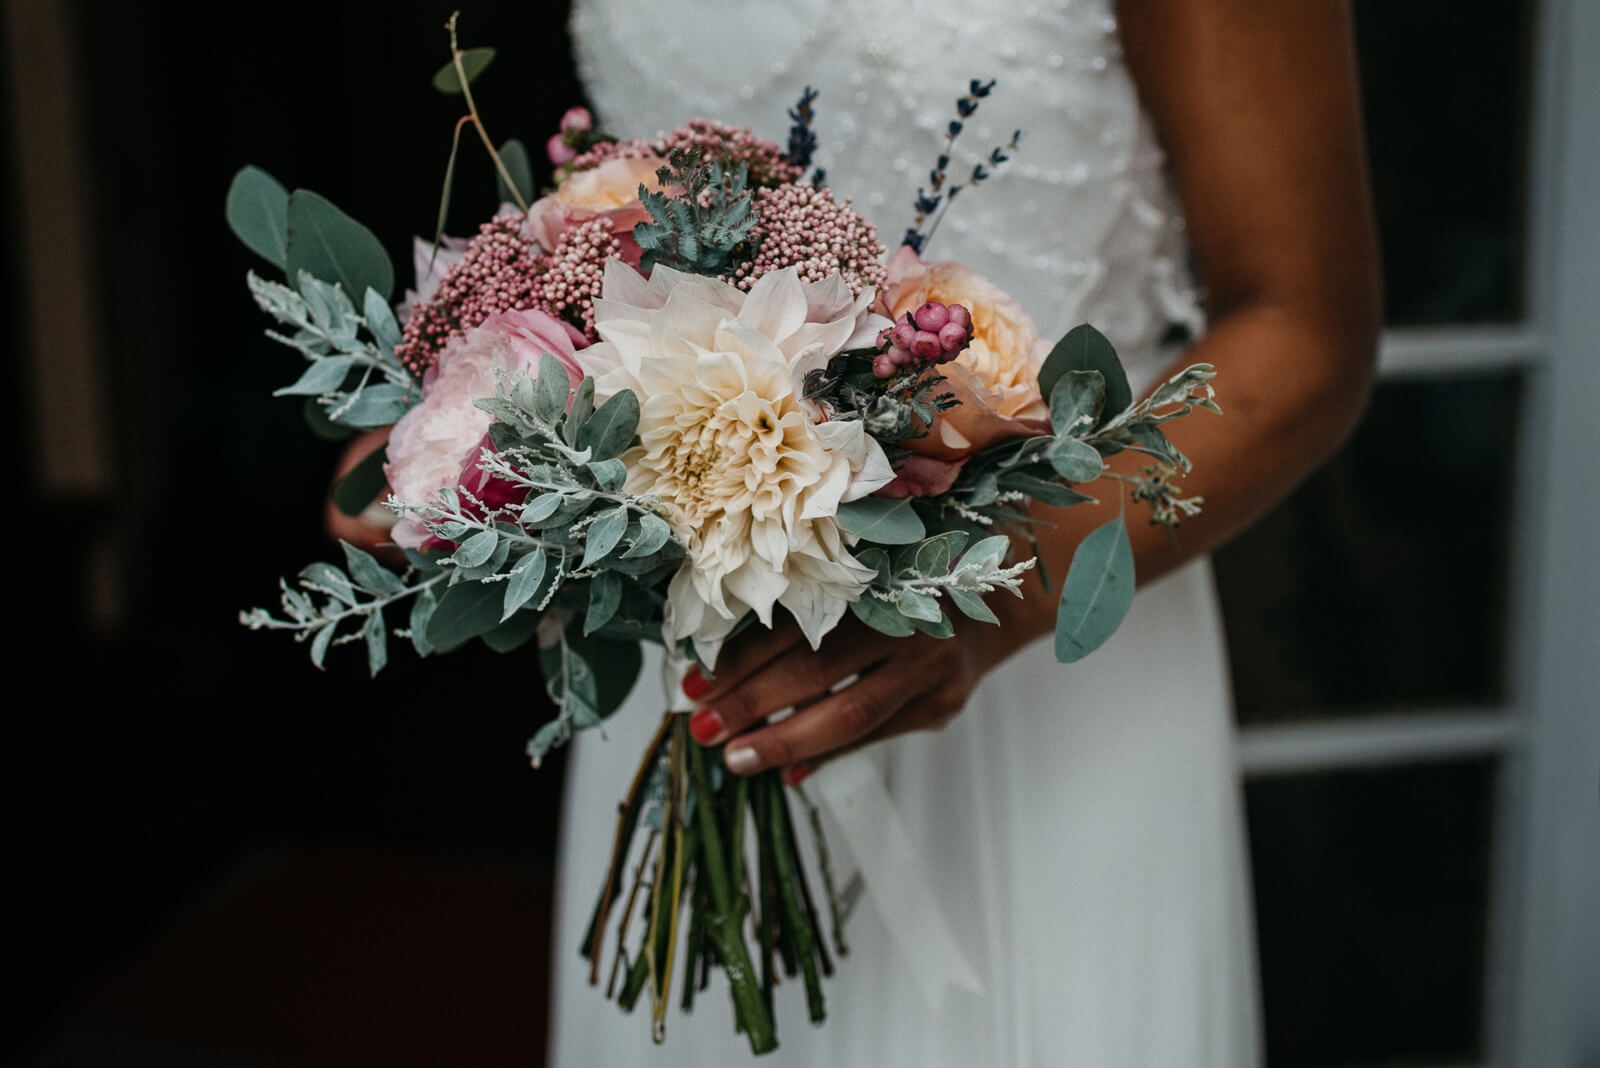 bride holding her stunning bouquet of cream dahlias, eucalyptus, apricot david austin roses and foliage